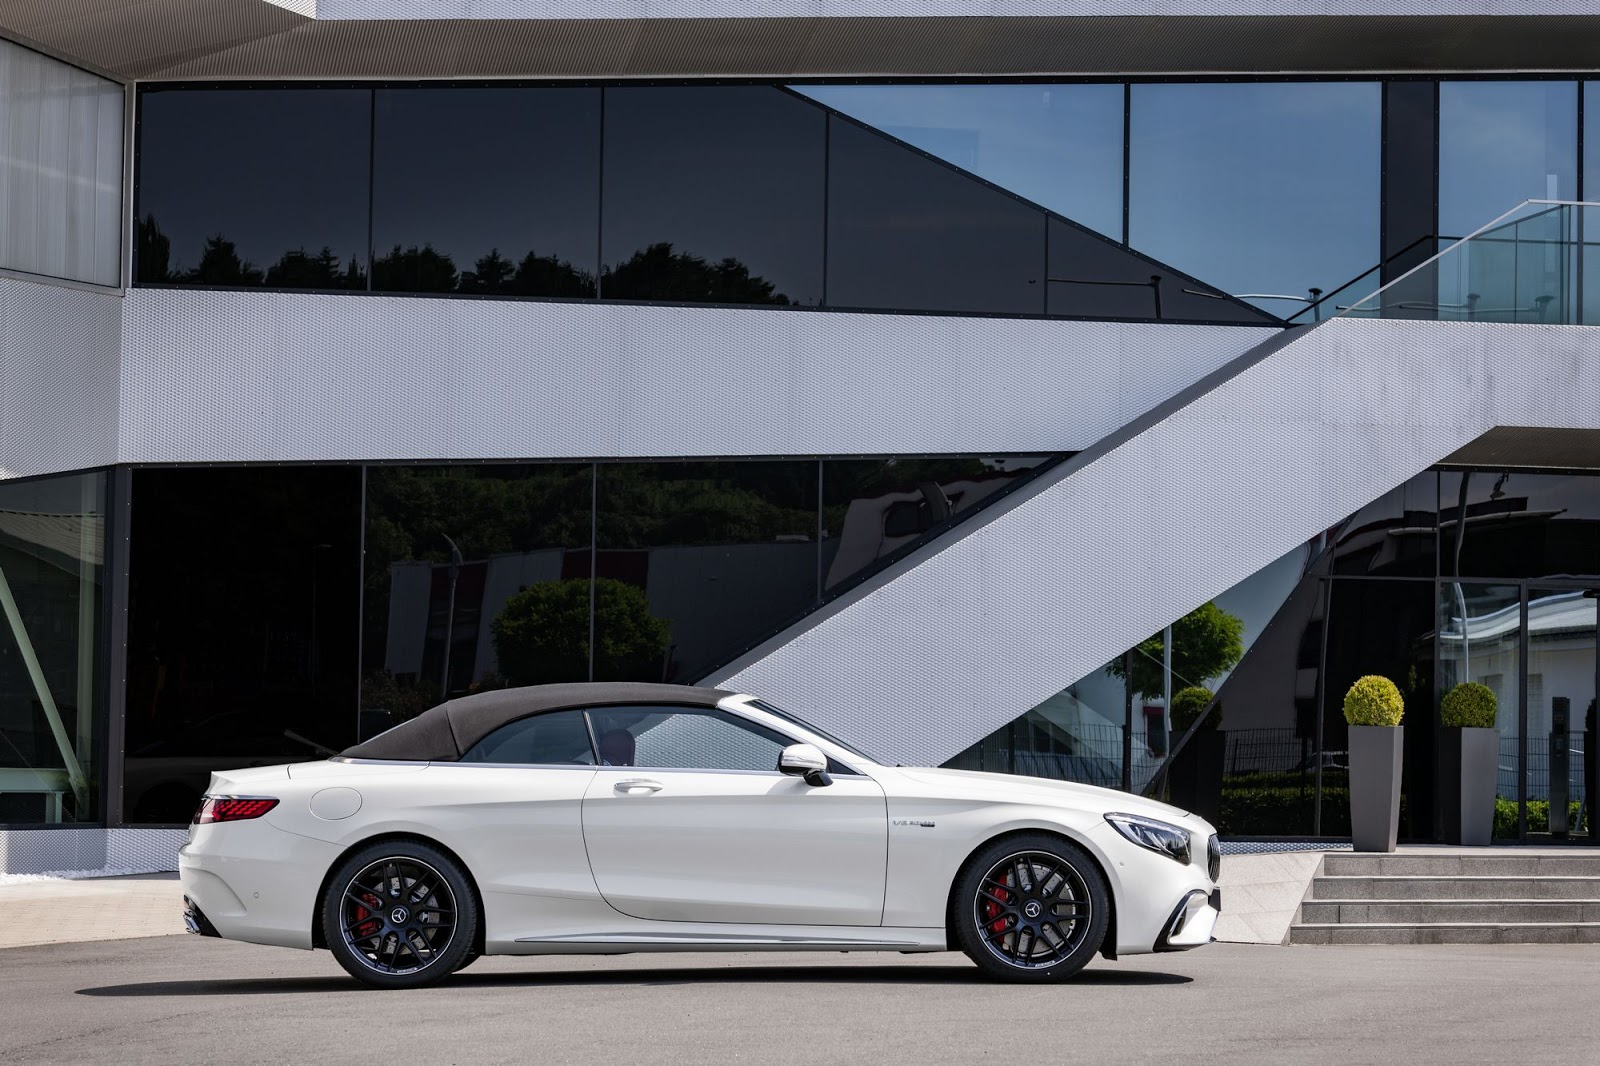 Mercedes-AMG S 63 4MATIC+ Cabriolet, 2017. Exterieur: designo diamantweiß bright;Kraftstoffverbrauch kombiniert: 10,1 l/100 km; CO2-Emissionen kombiniert: 229 g/km*